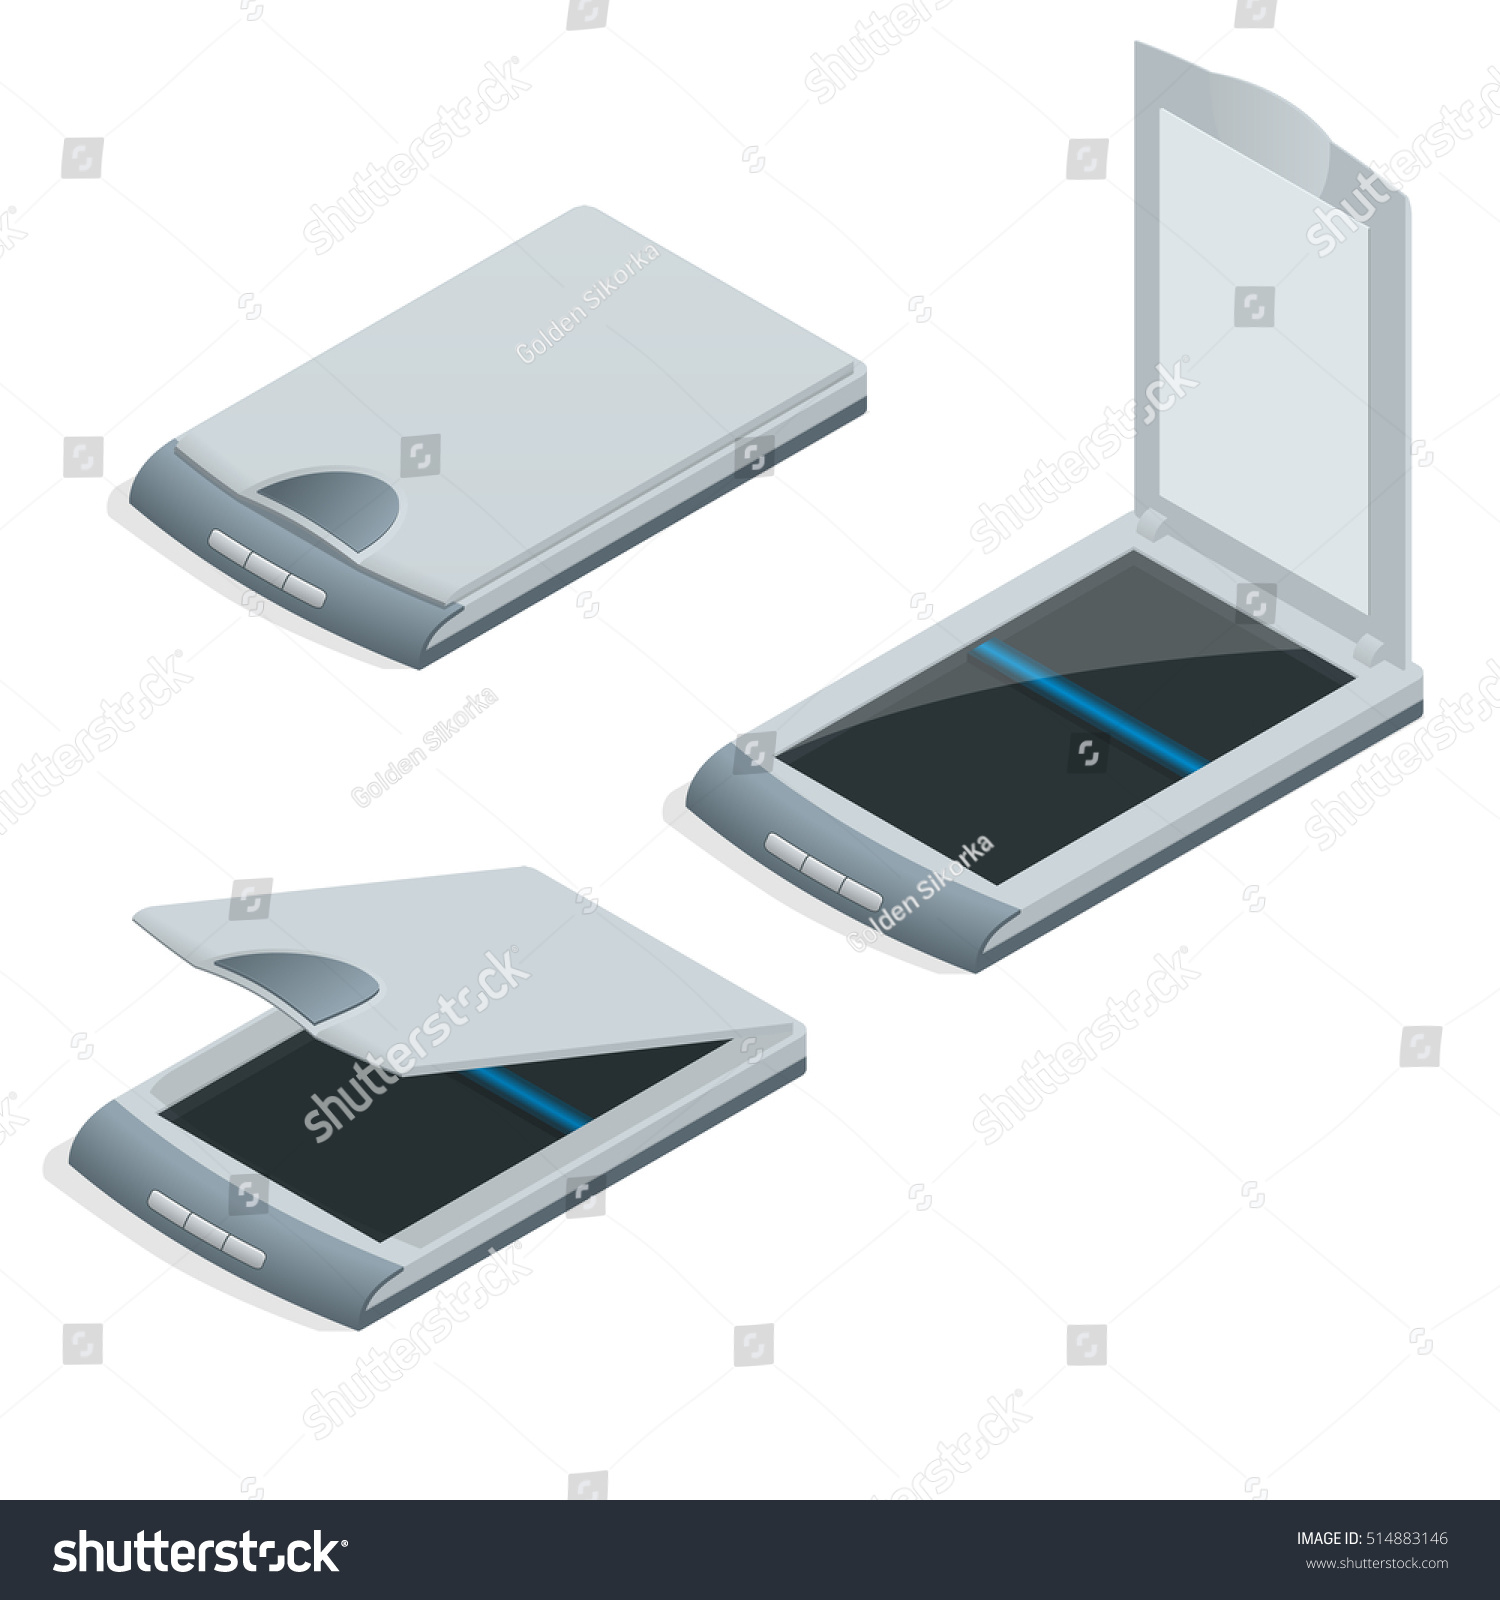 industry commercial electronics industry essay Due to growing advancements in the kitchen appliances industry, the smart kitchen appliances market electronics co, ltd, lg commercial smart kitchen.